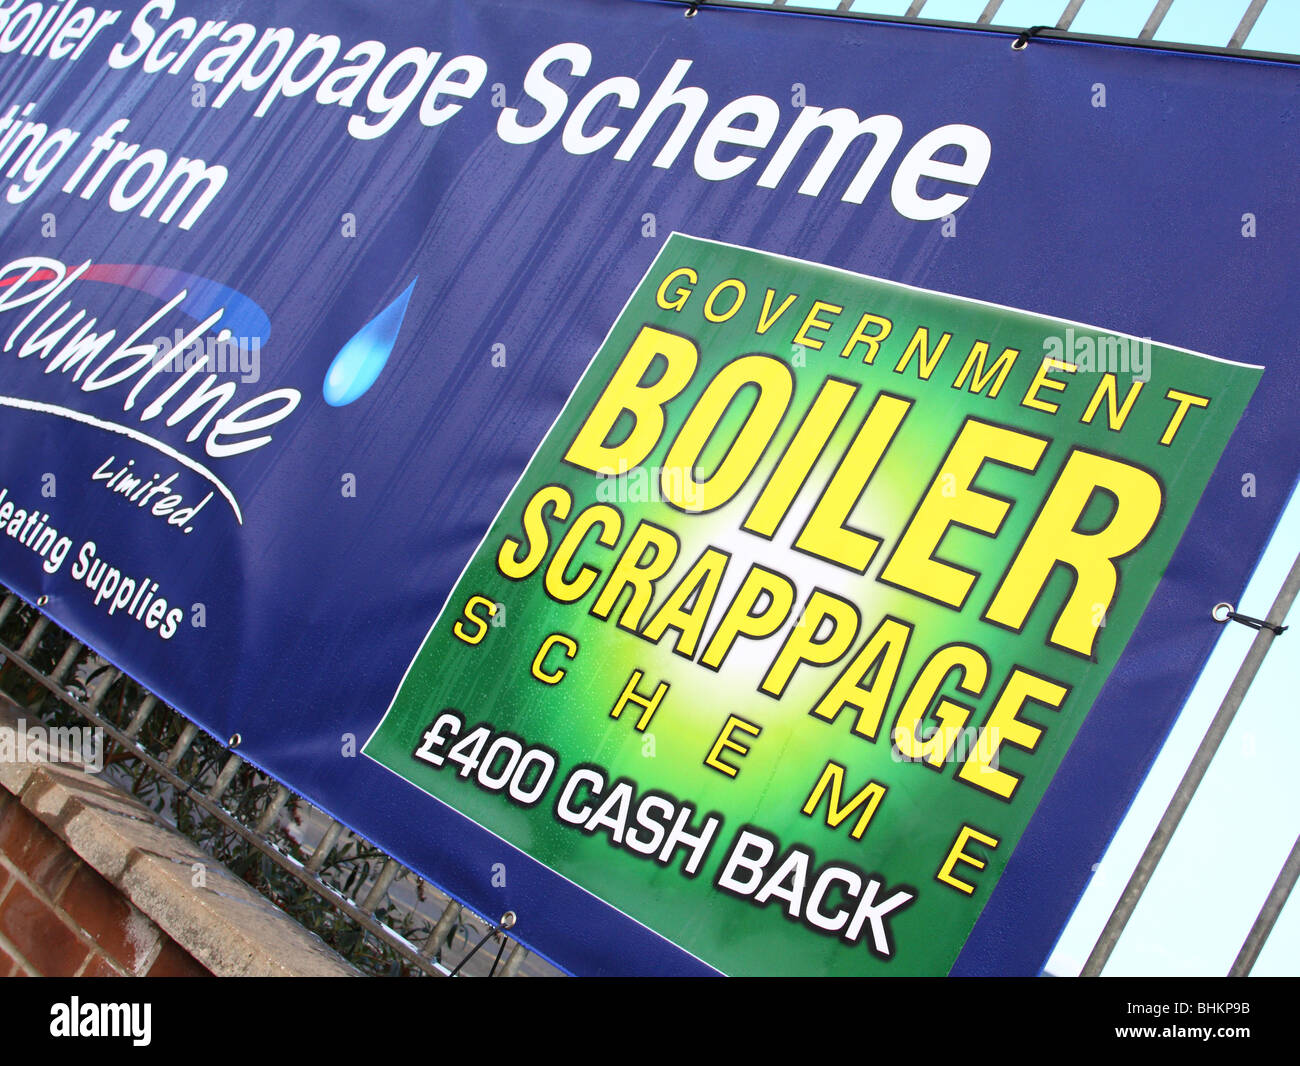 Government Scrappage Scheme Stock Photos Amp Government